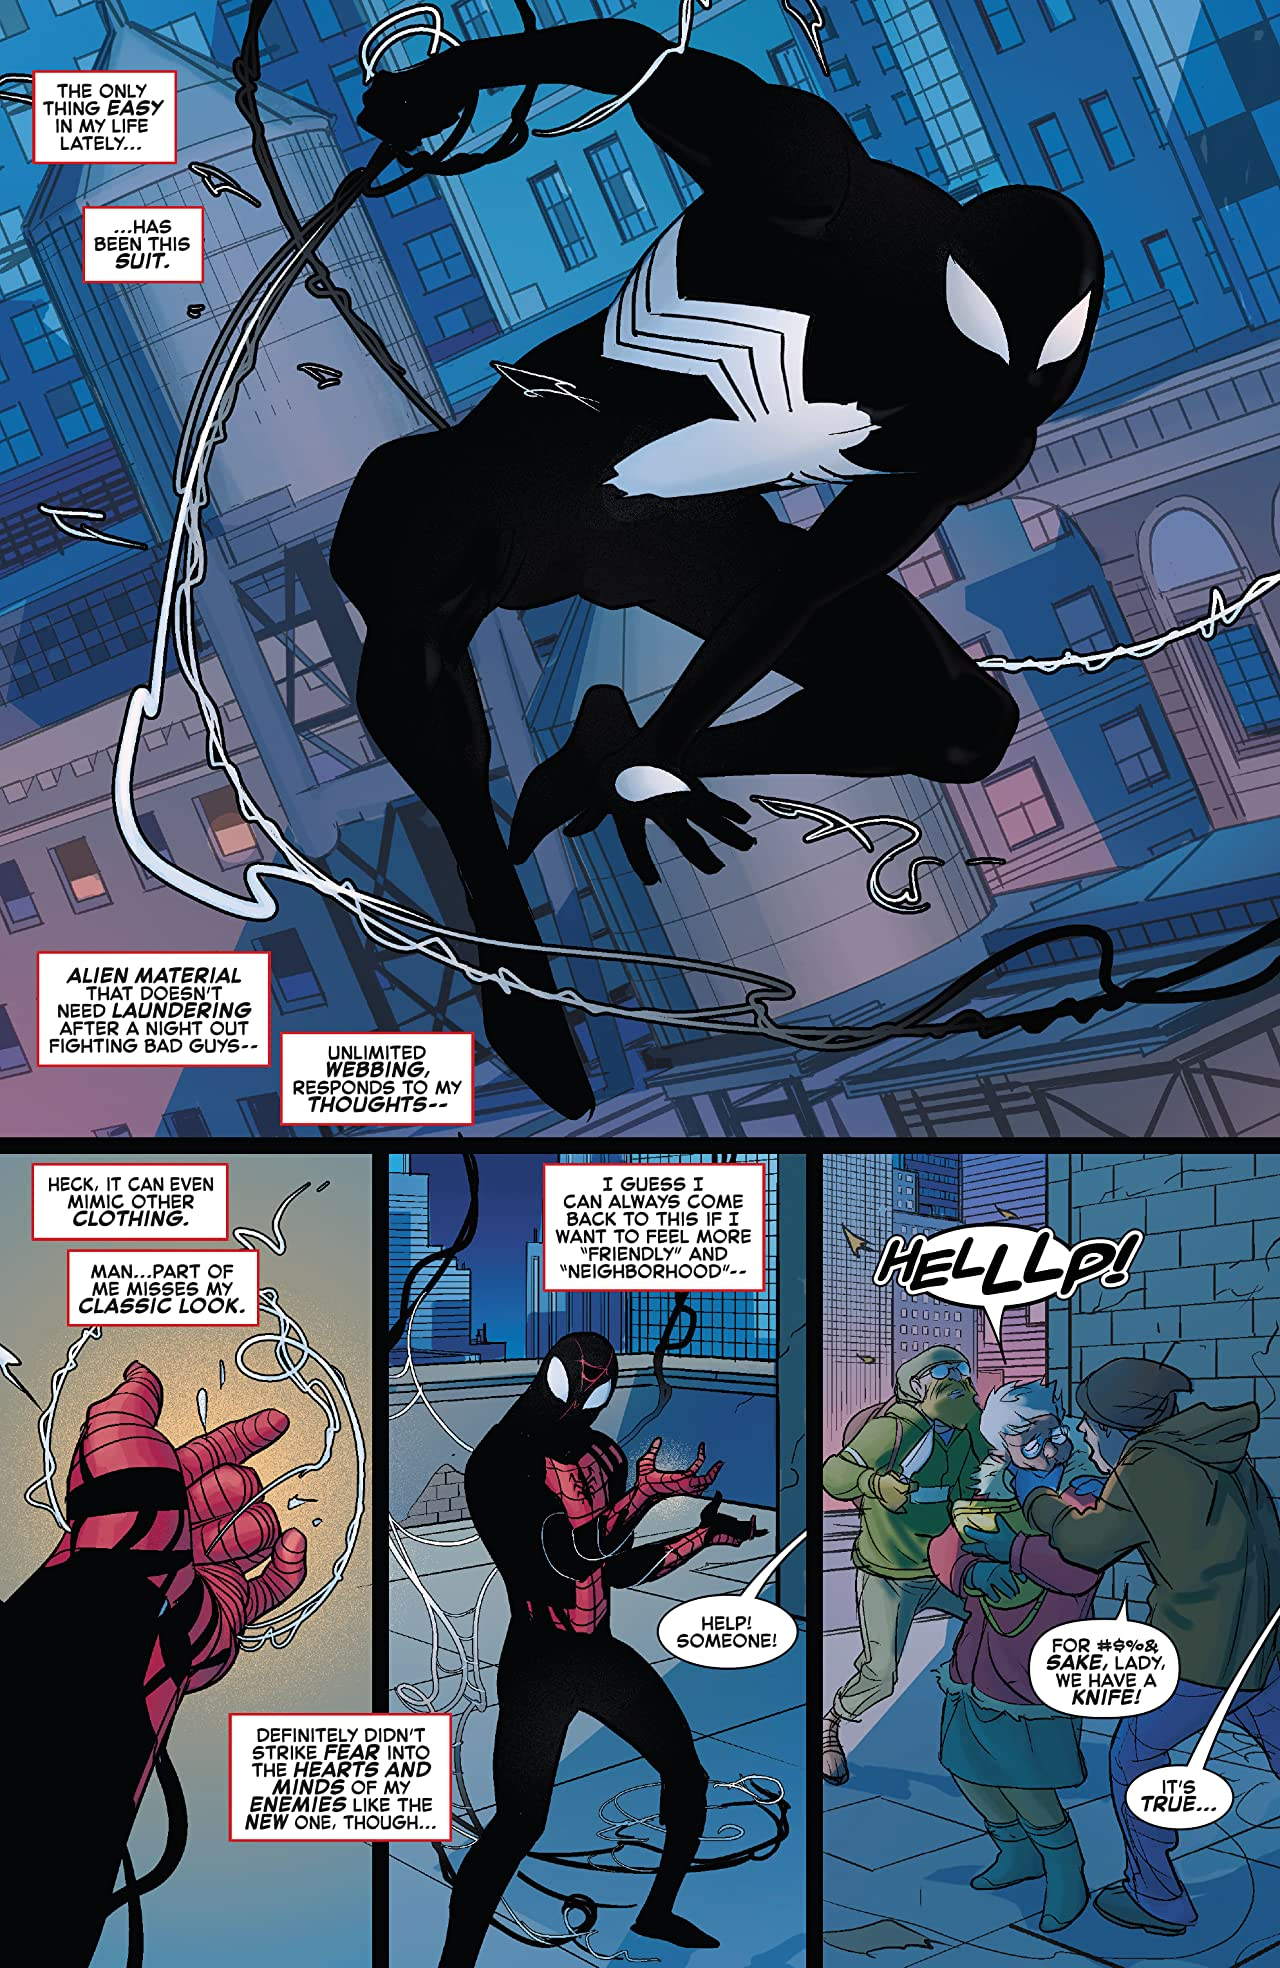 Spider-Man: The Spider's Shadow (2021) #1 (of 5)